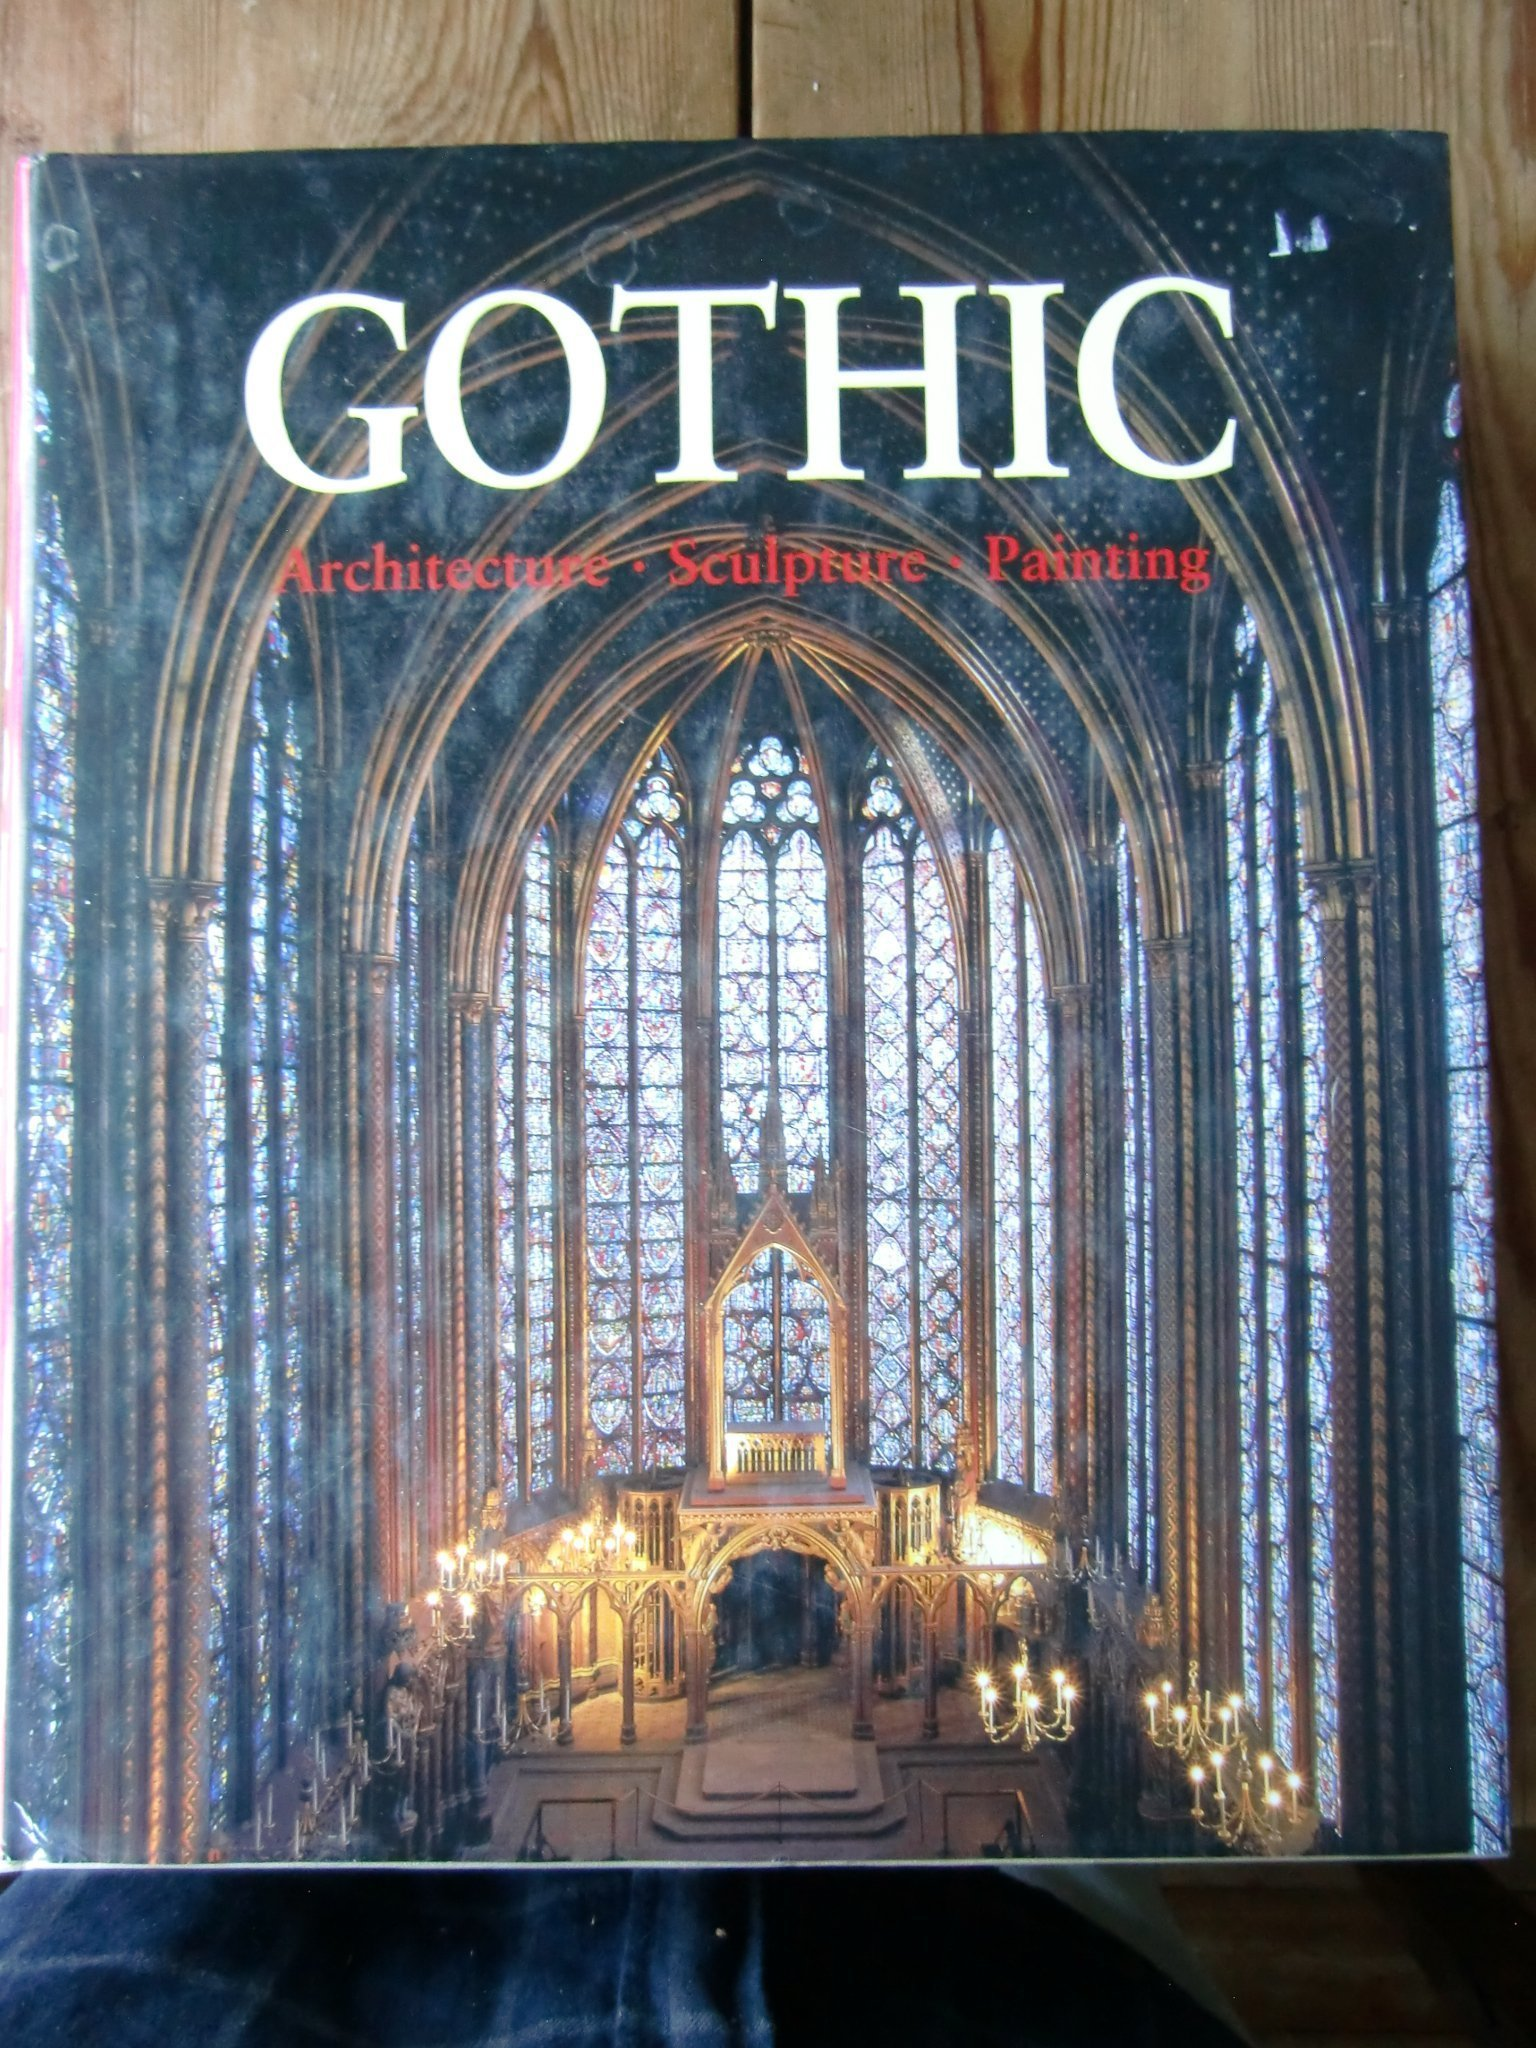 The Art of Gothic. Architecture, Sculpture, Painting. gotik